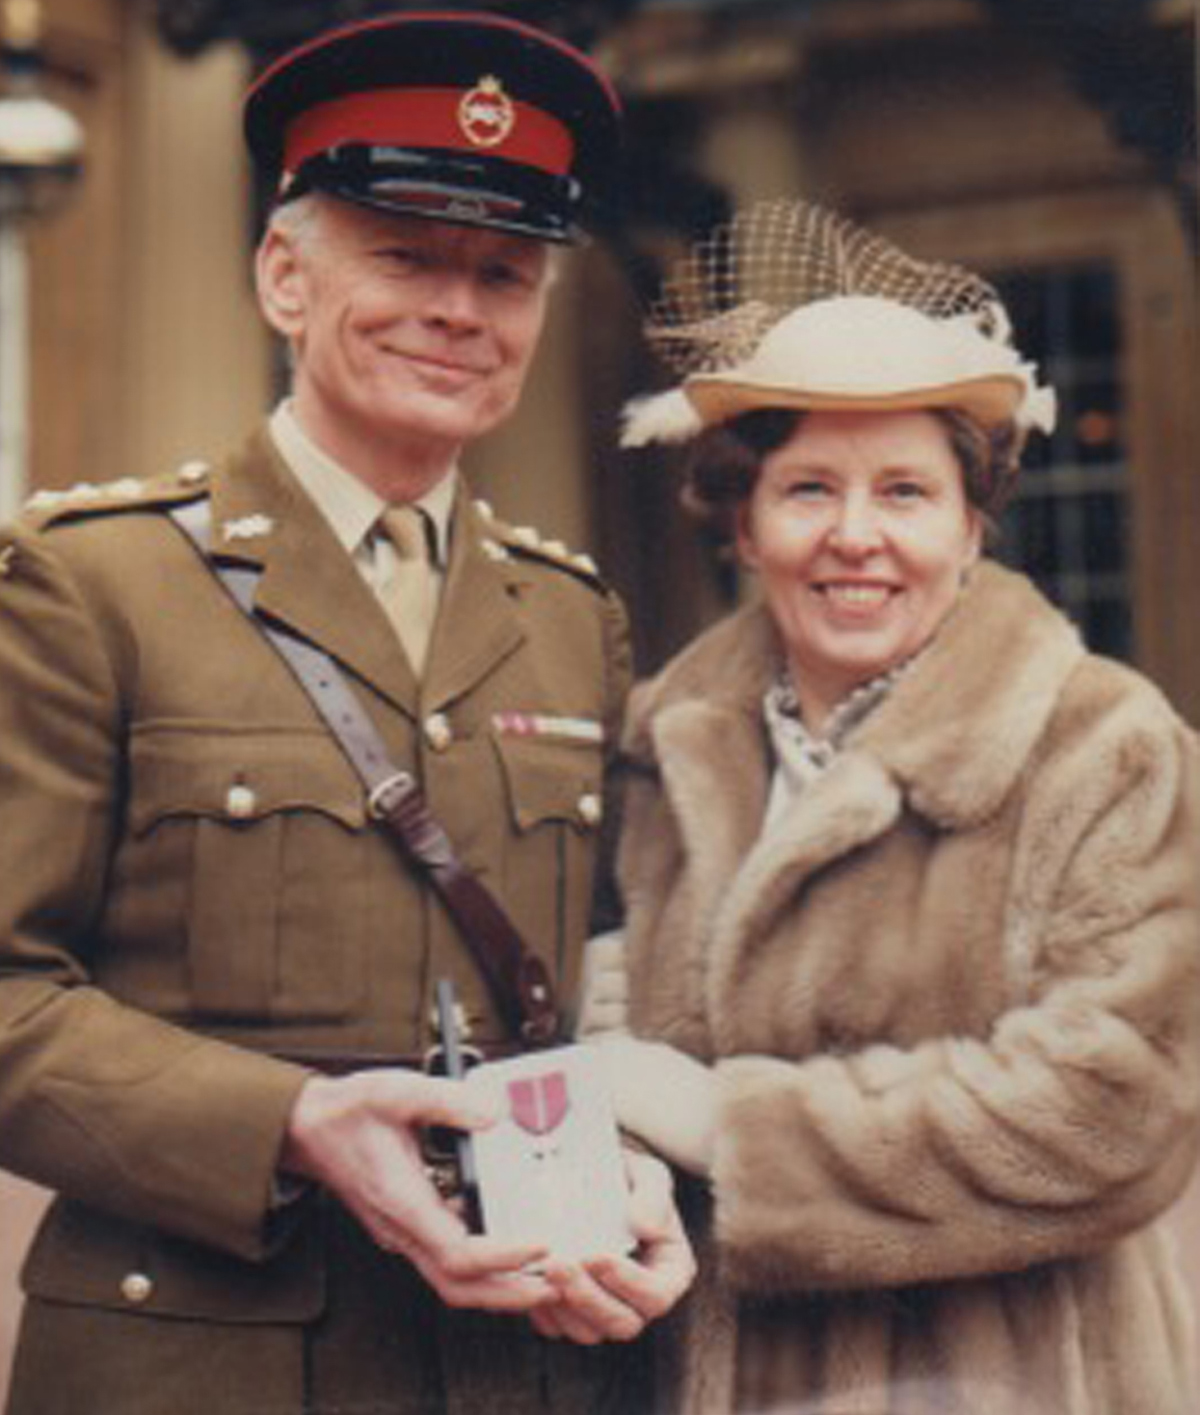 Major Peter Taylor with his late wife Gladys in 1985 at Buckingham Palace when he received an MBE